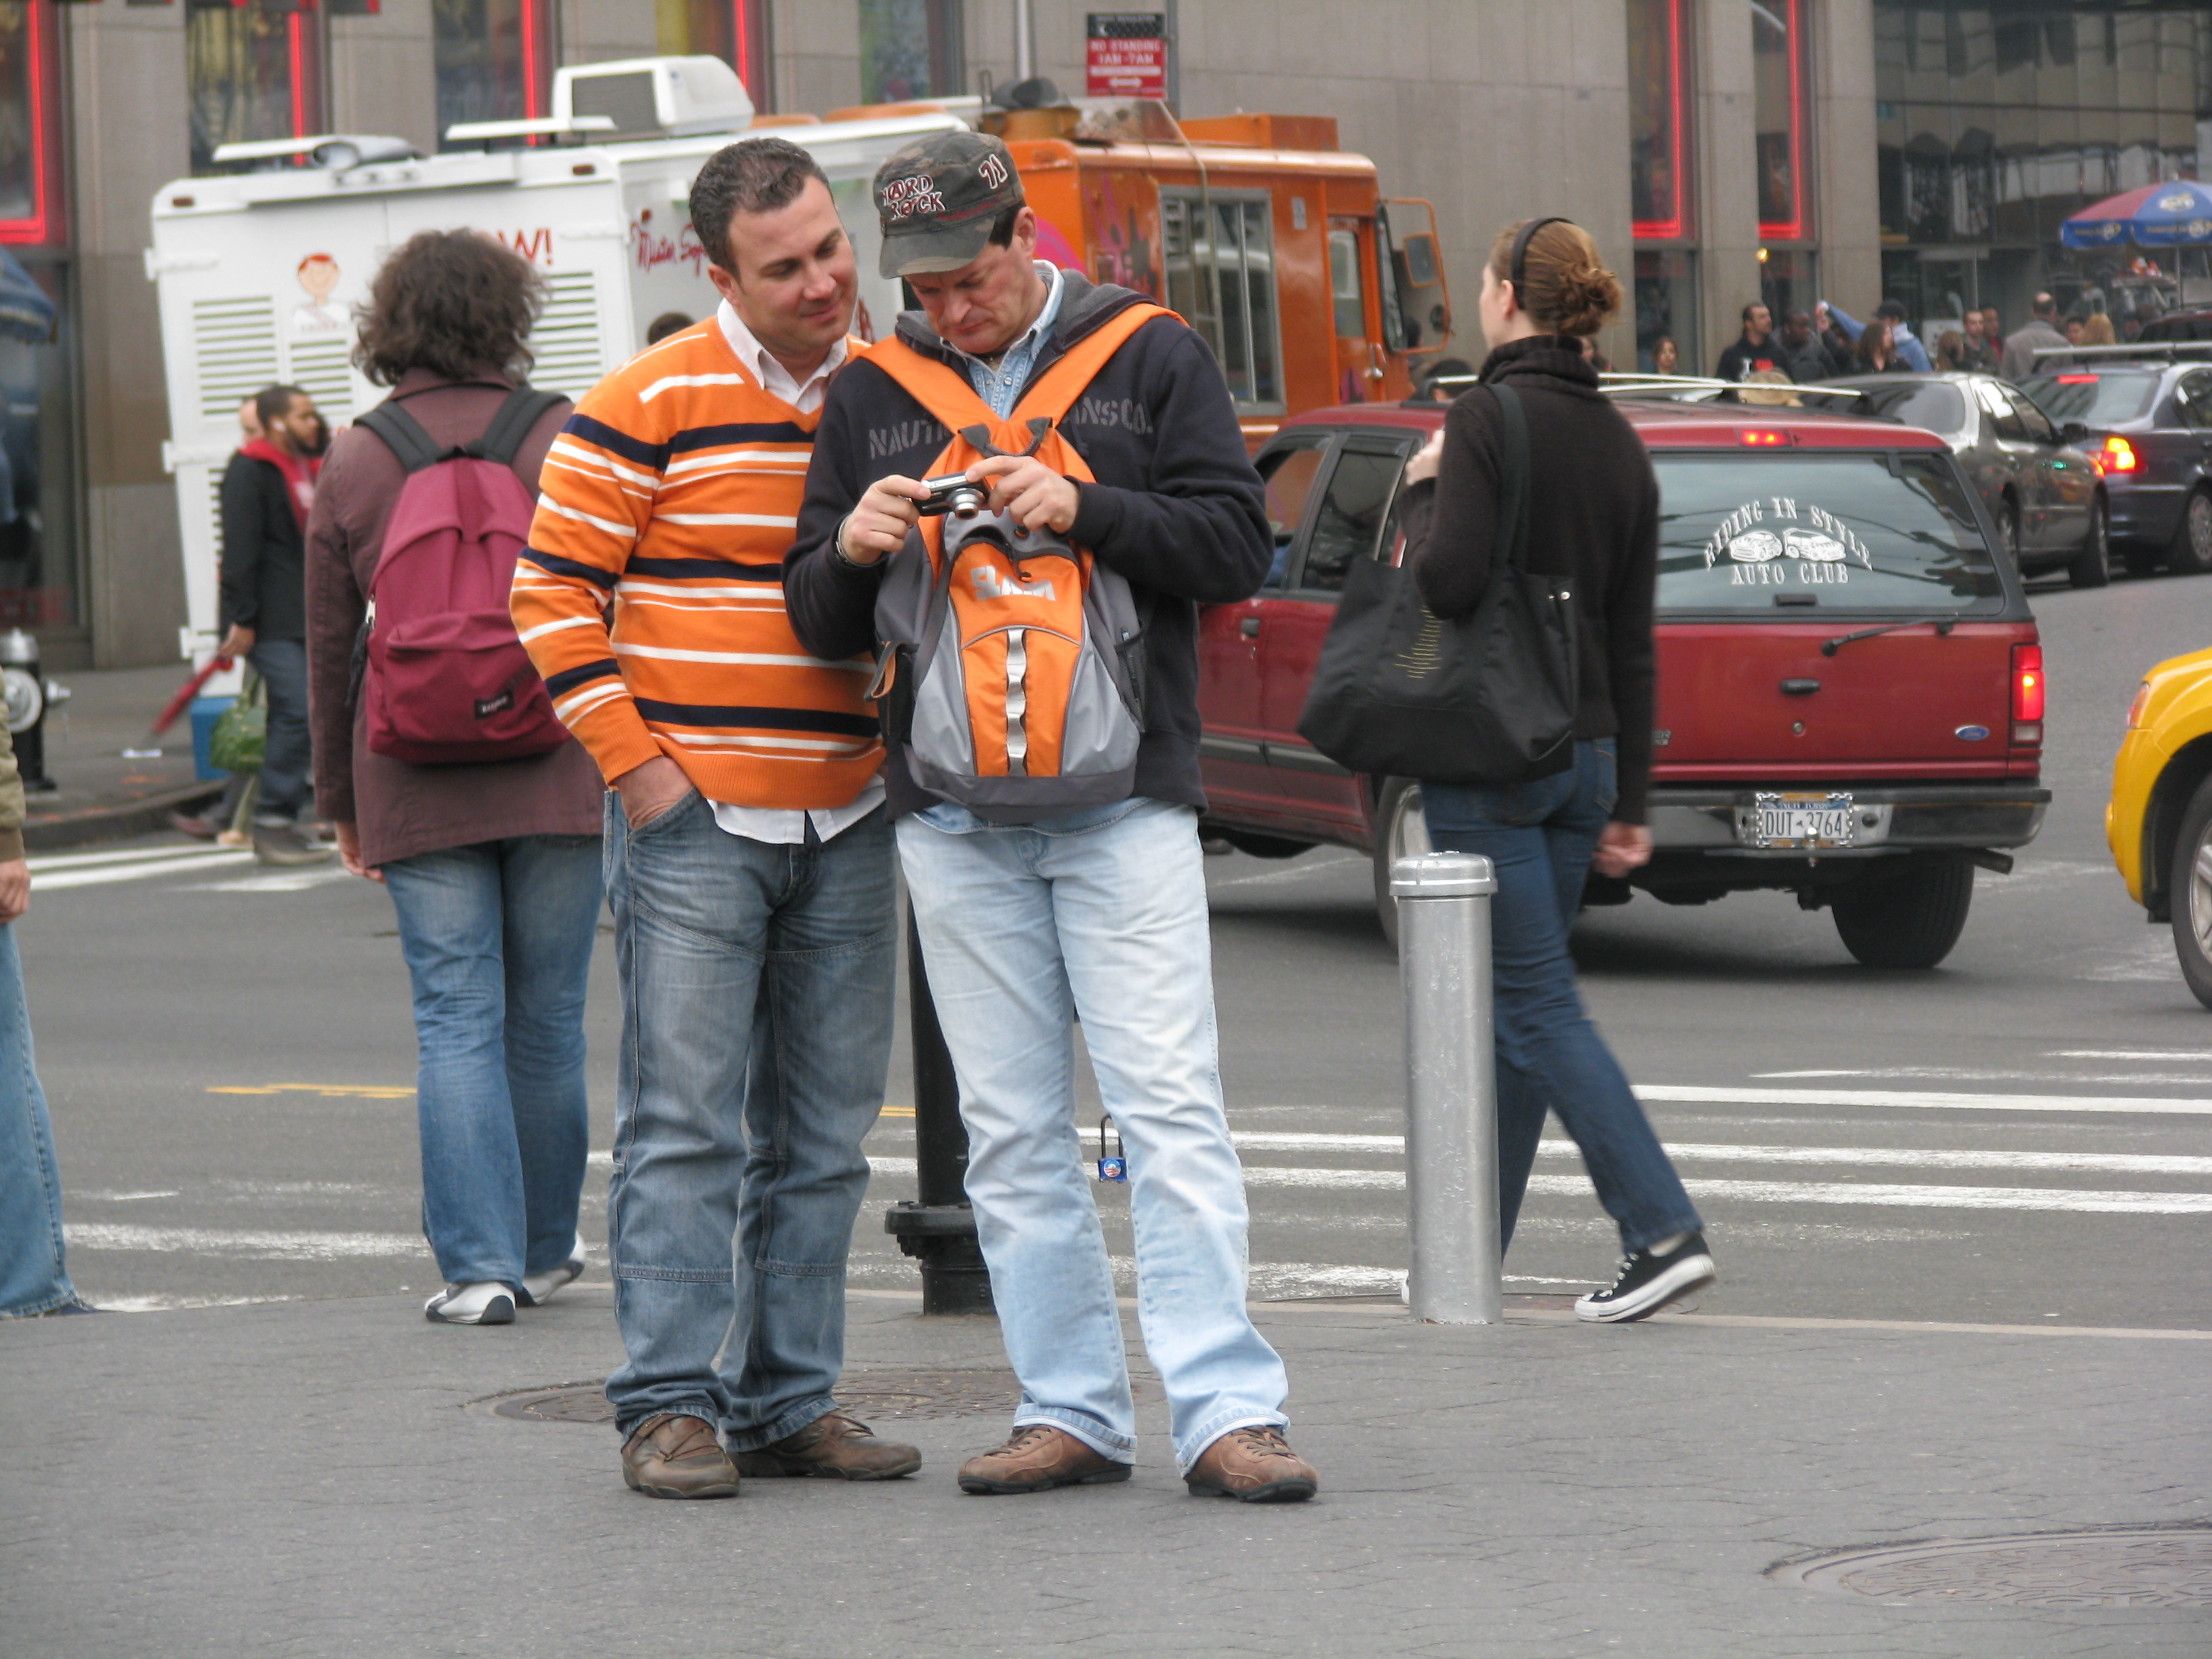 Tourists in orange wearing backpack in front so as not to get robbed